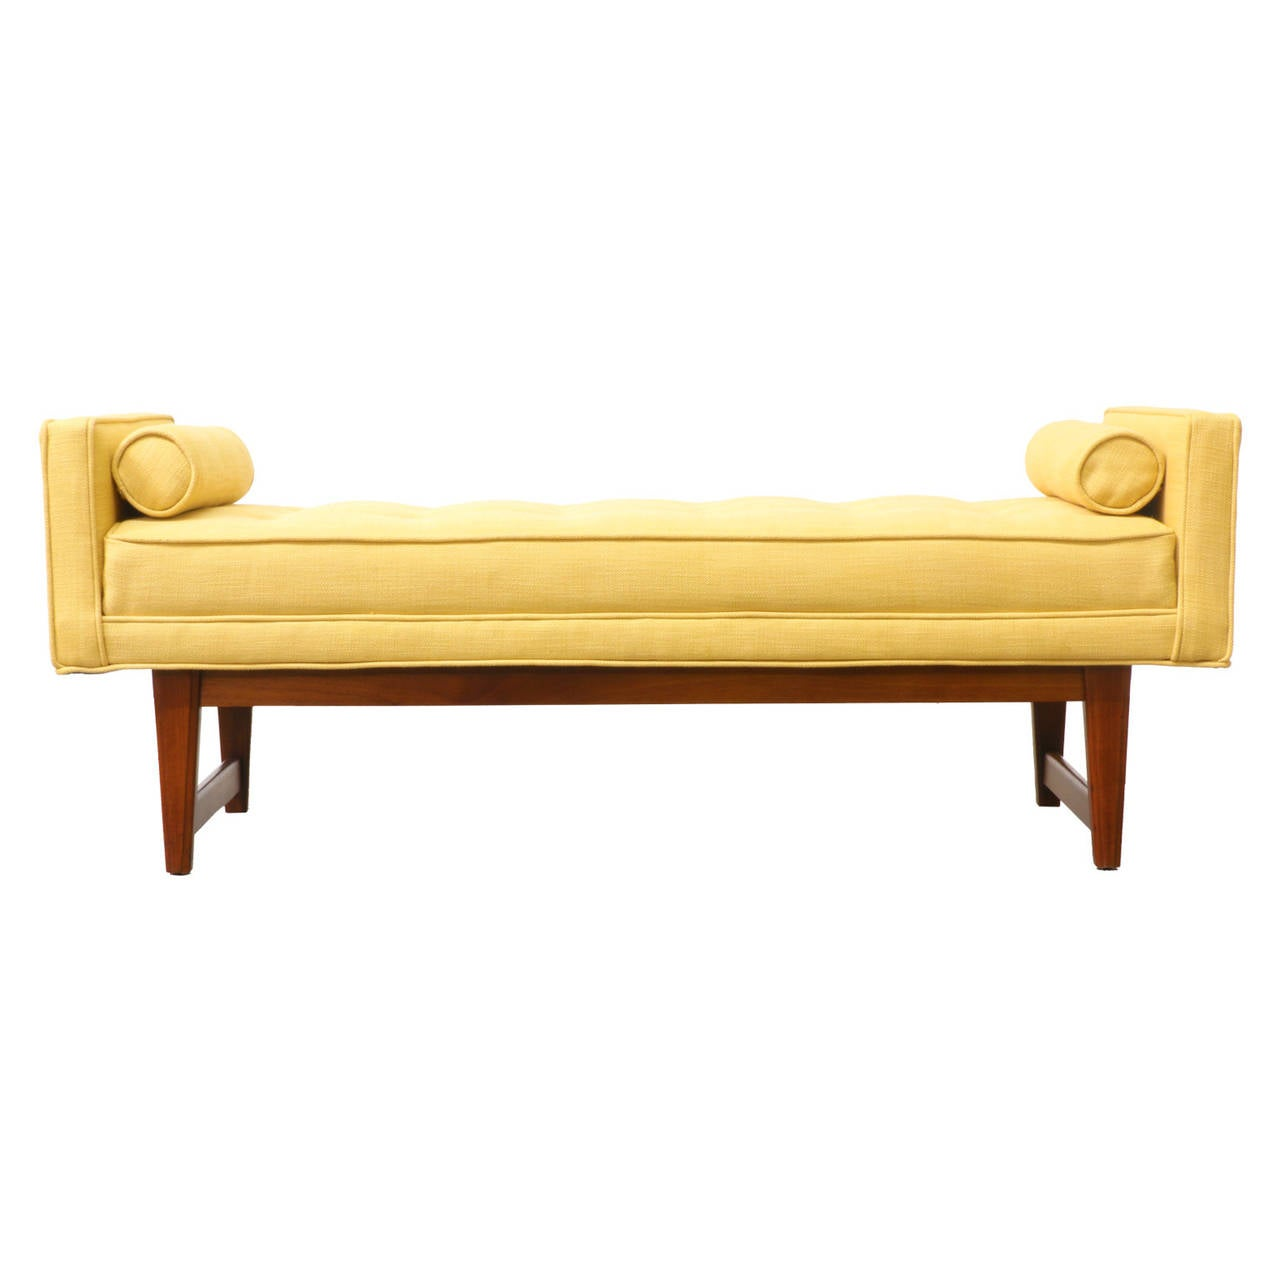 Mid Century Modern Tufted Bench At 1stdibs